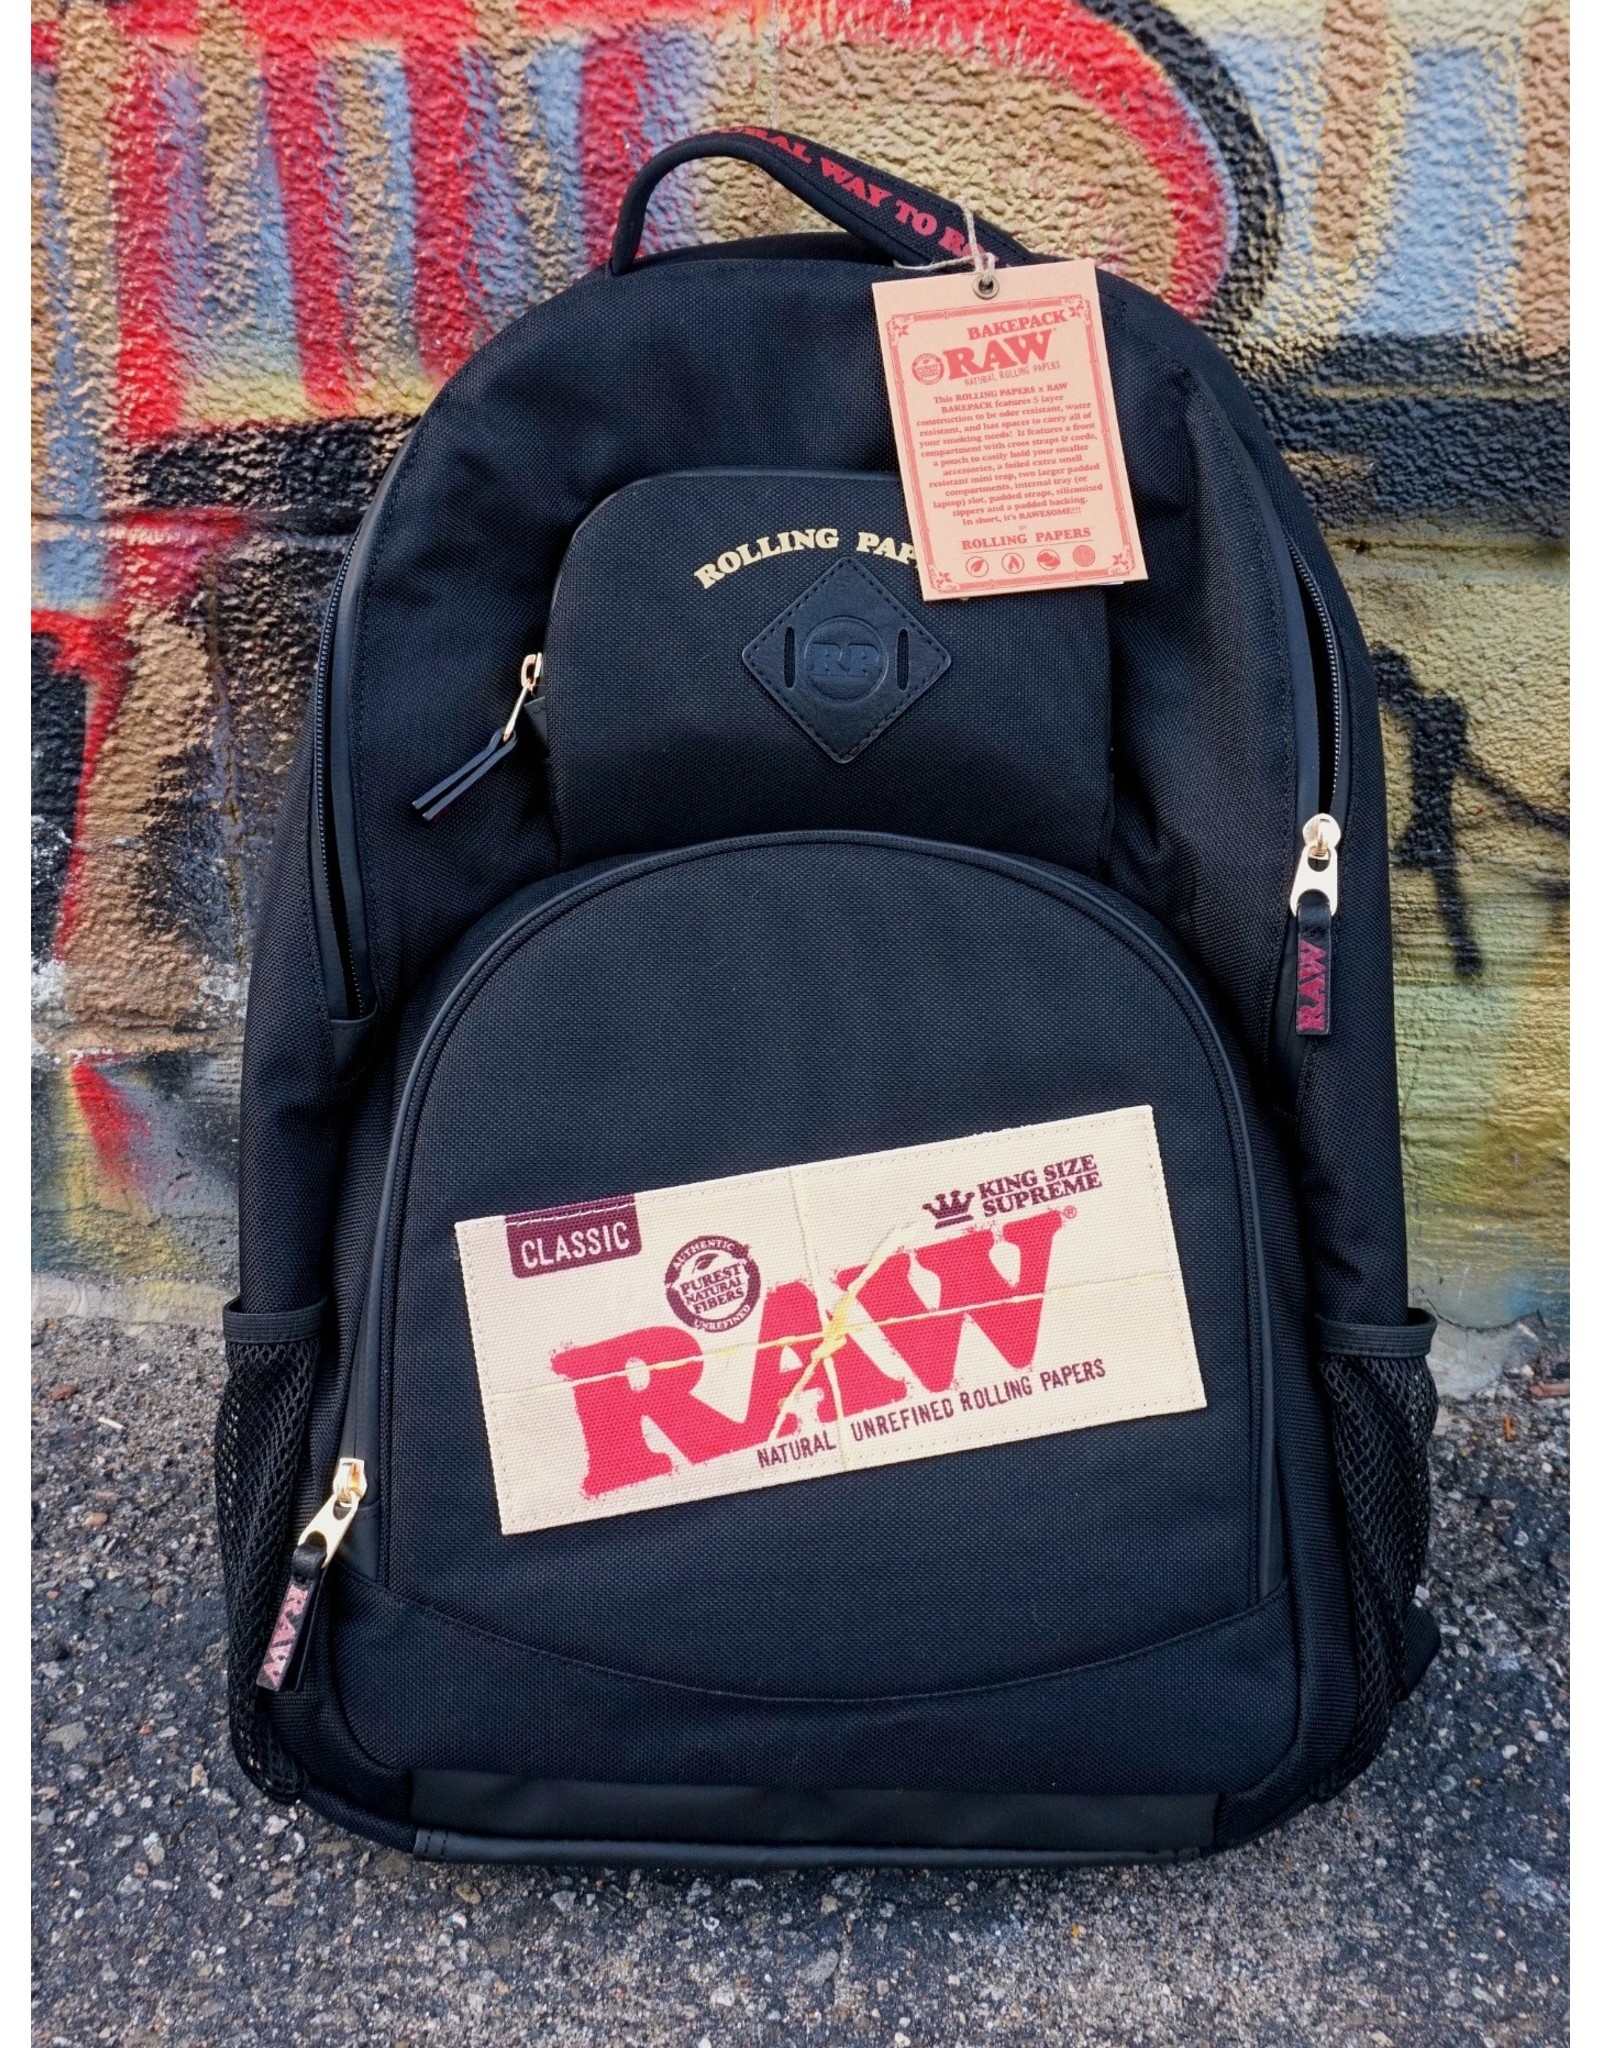 Raw Raw Smell Proof Backpack (BakePack) - Black